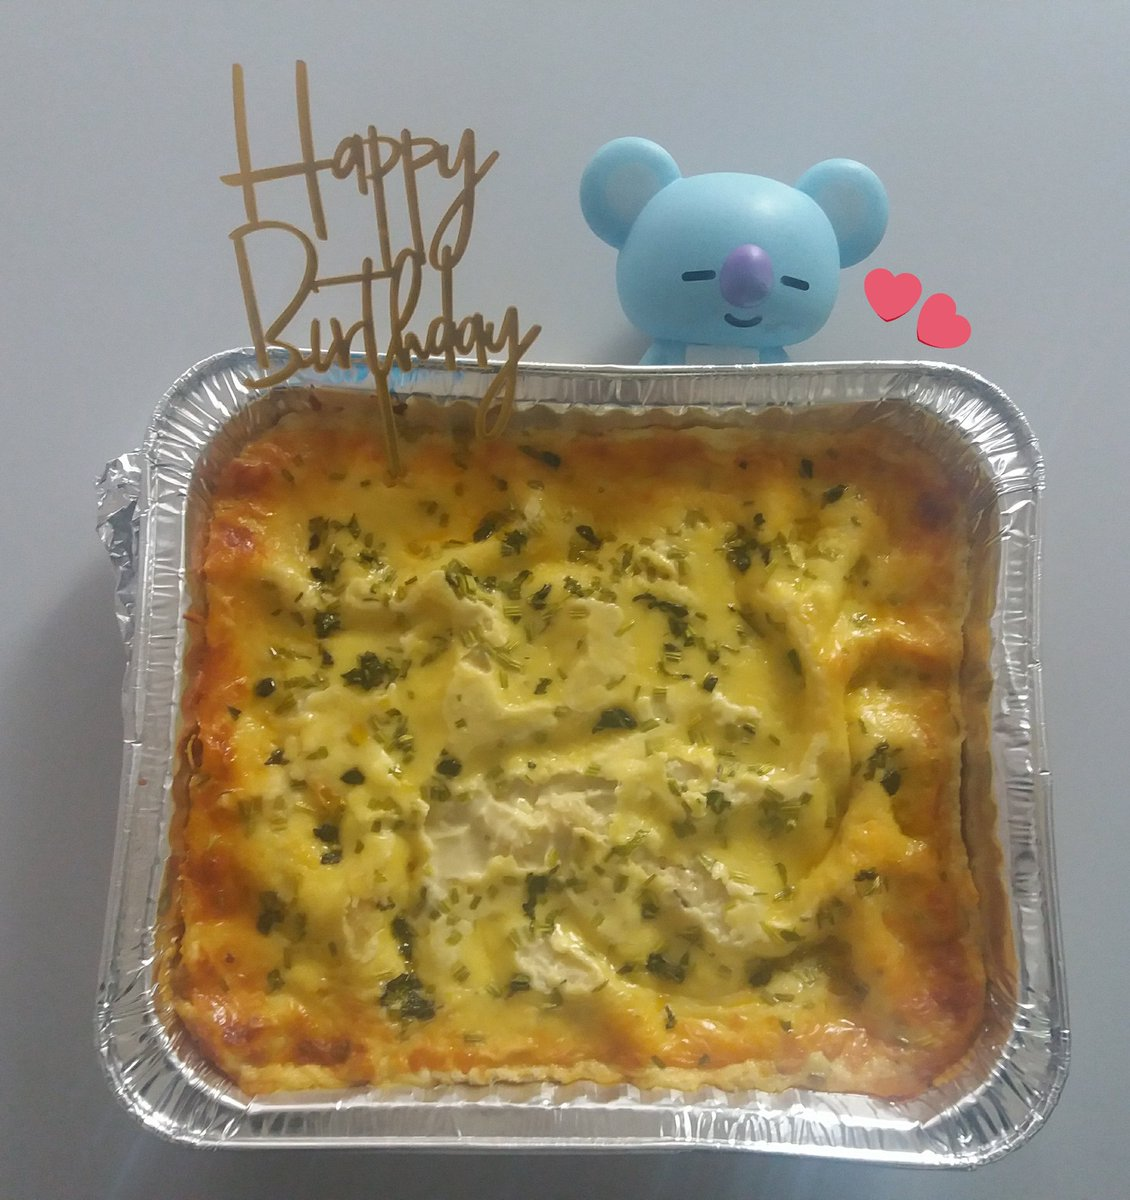 LASAGNA IN THE HOUSE!! by chef min 😌  happy birthday joon @BTS_twt 😚💕🌱🐨 #HAPPYRMDAY #RM생일ᄎᄏ  #OurJooniverse  #MoonchildDay